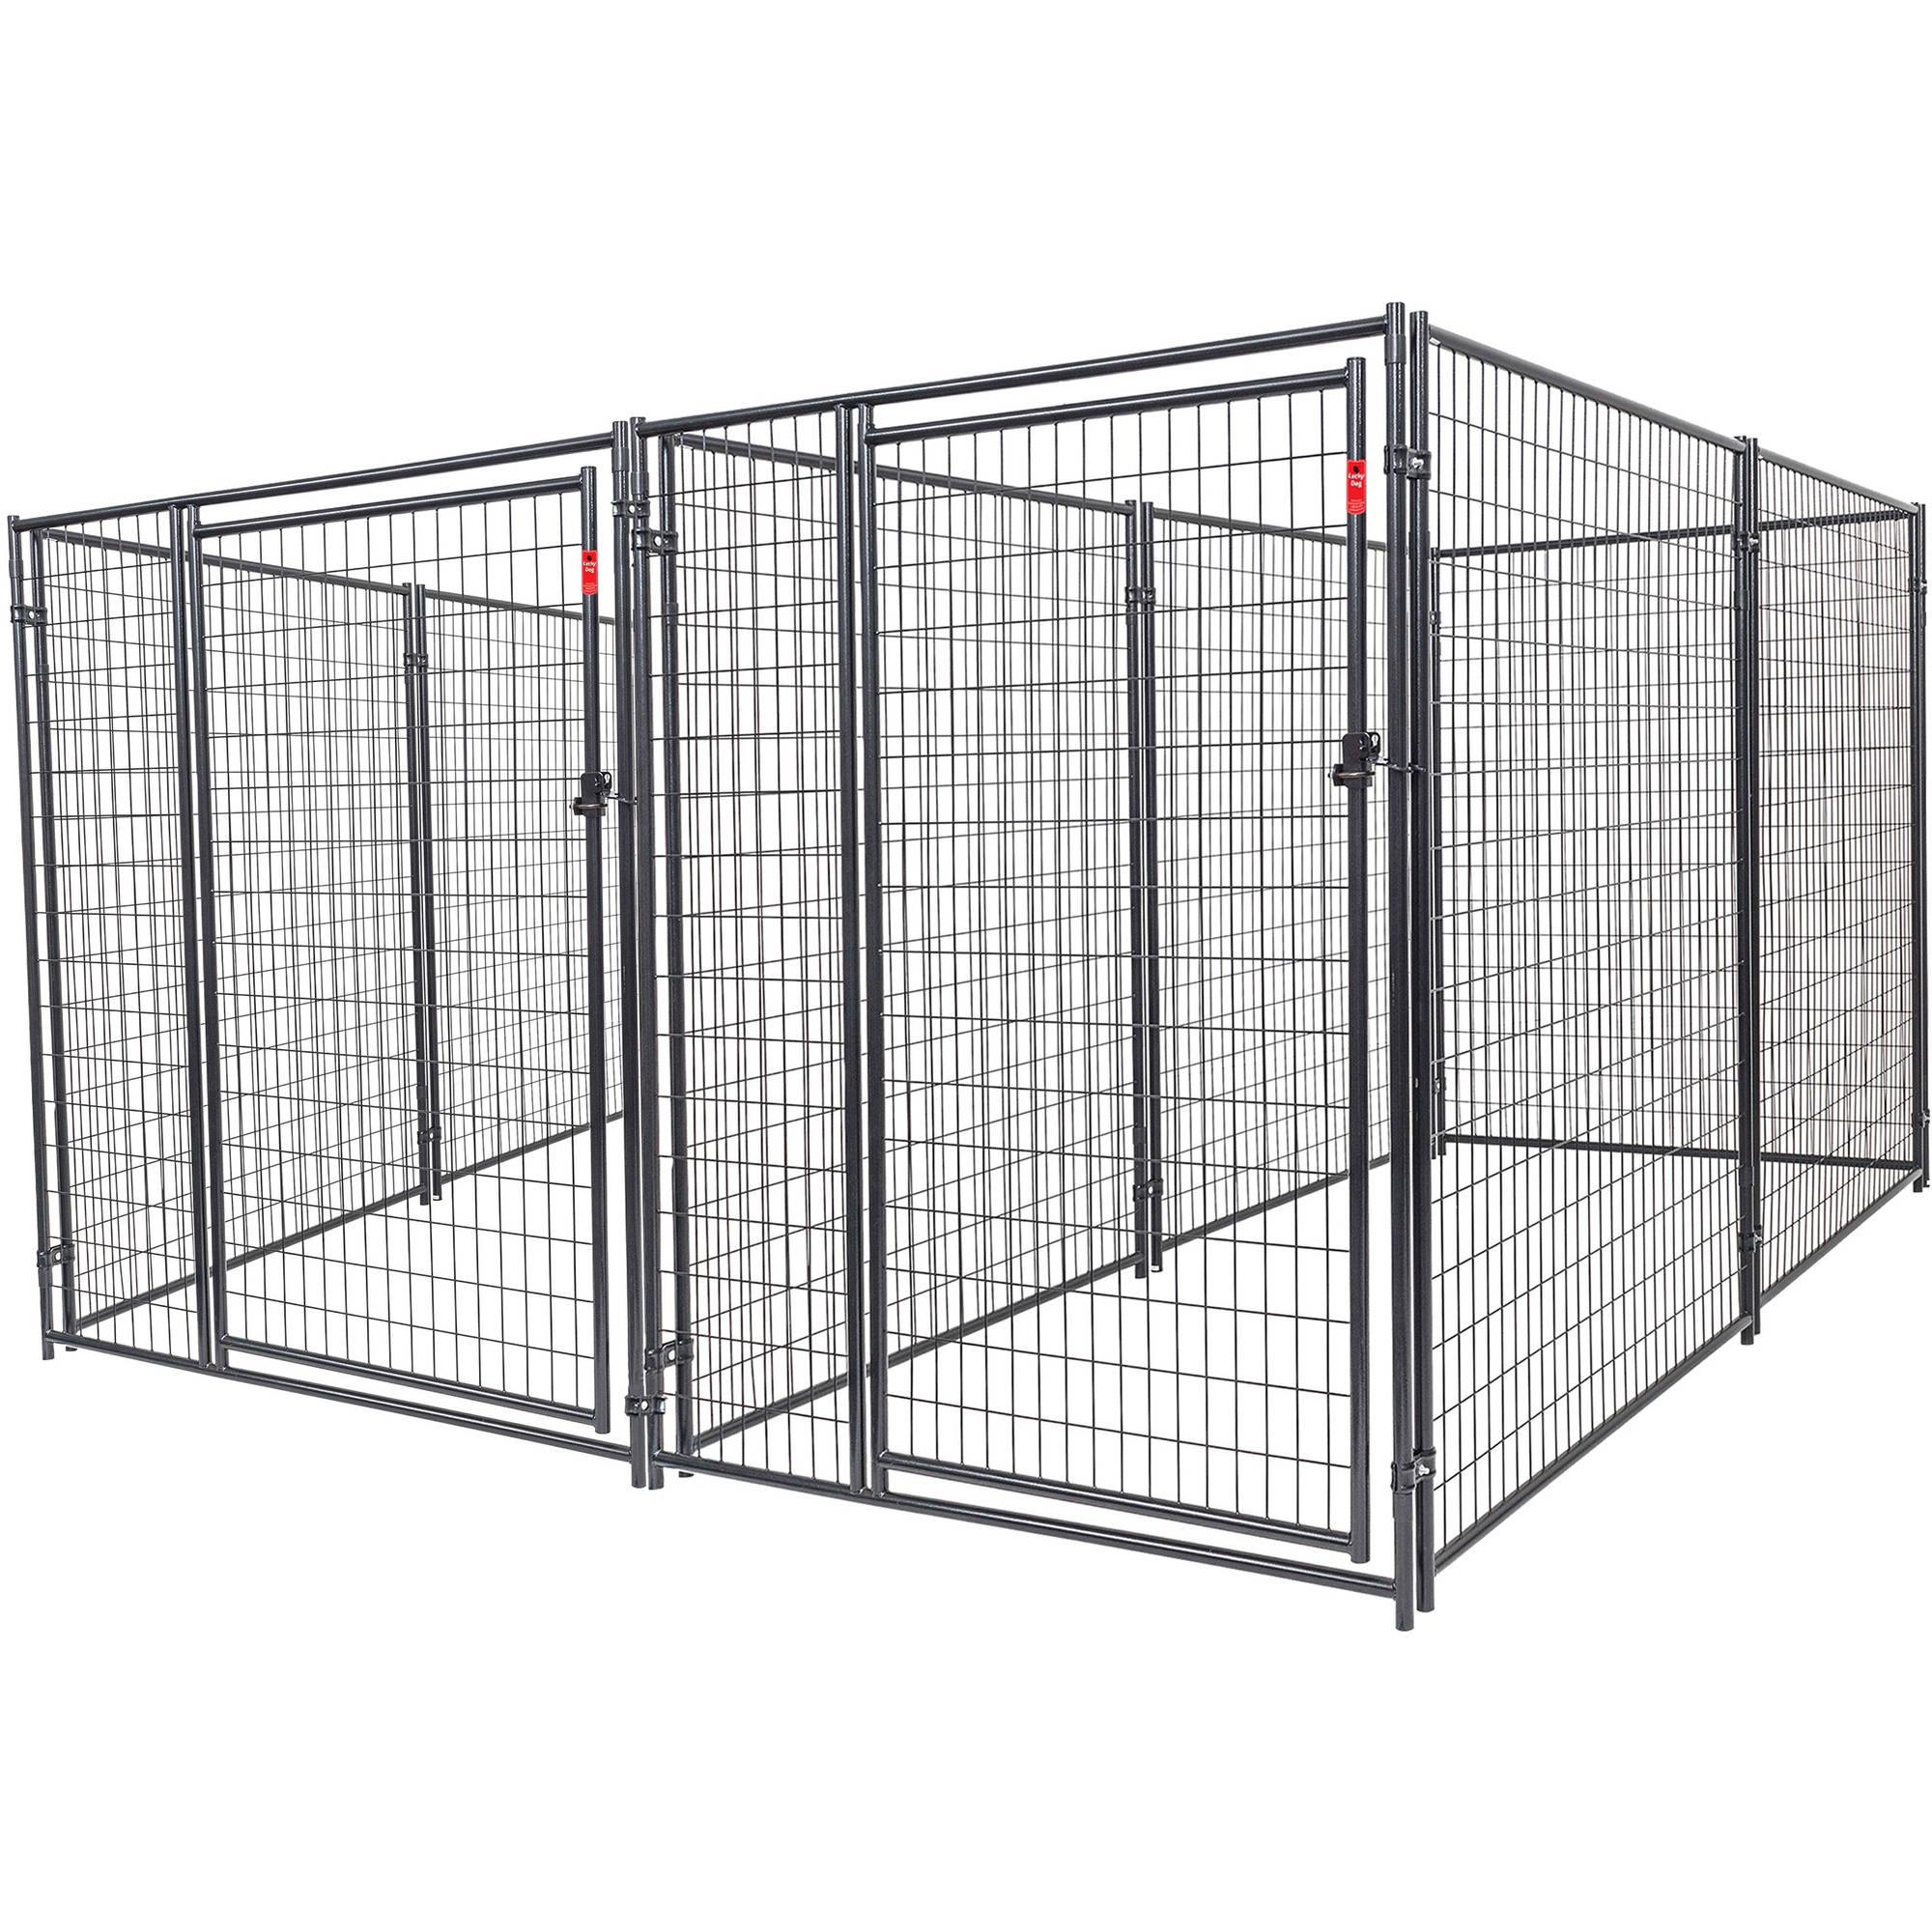 Lucky Dog Heavy Duty Dog Kennel 2-run w/common wall